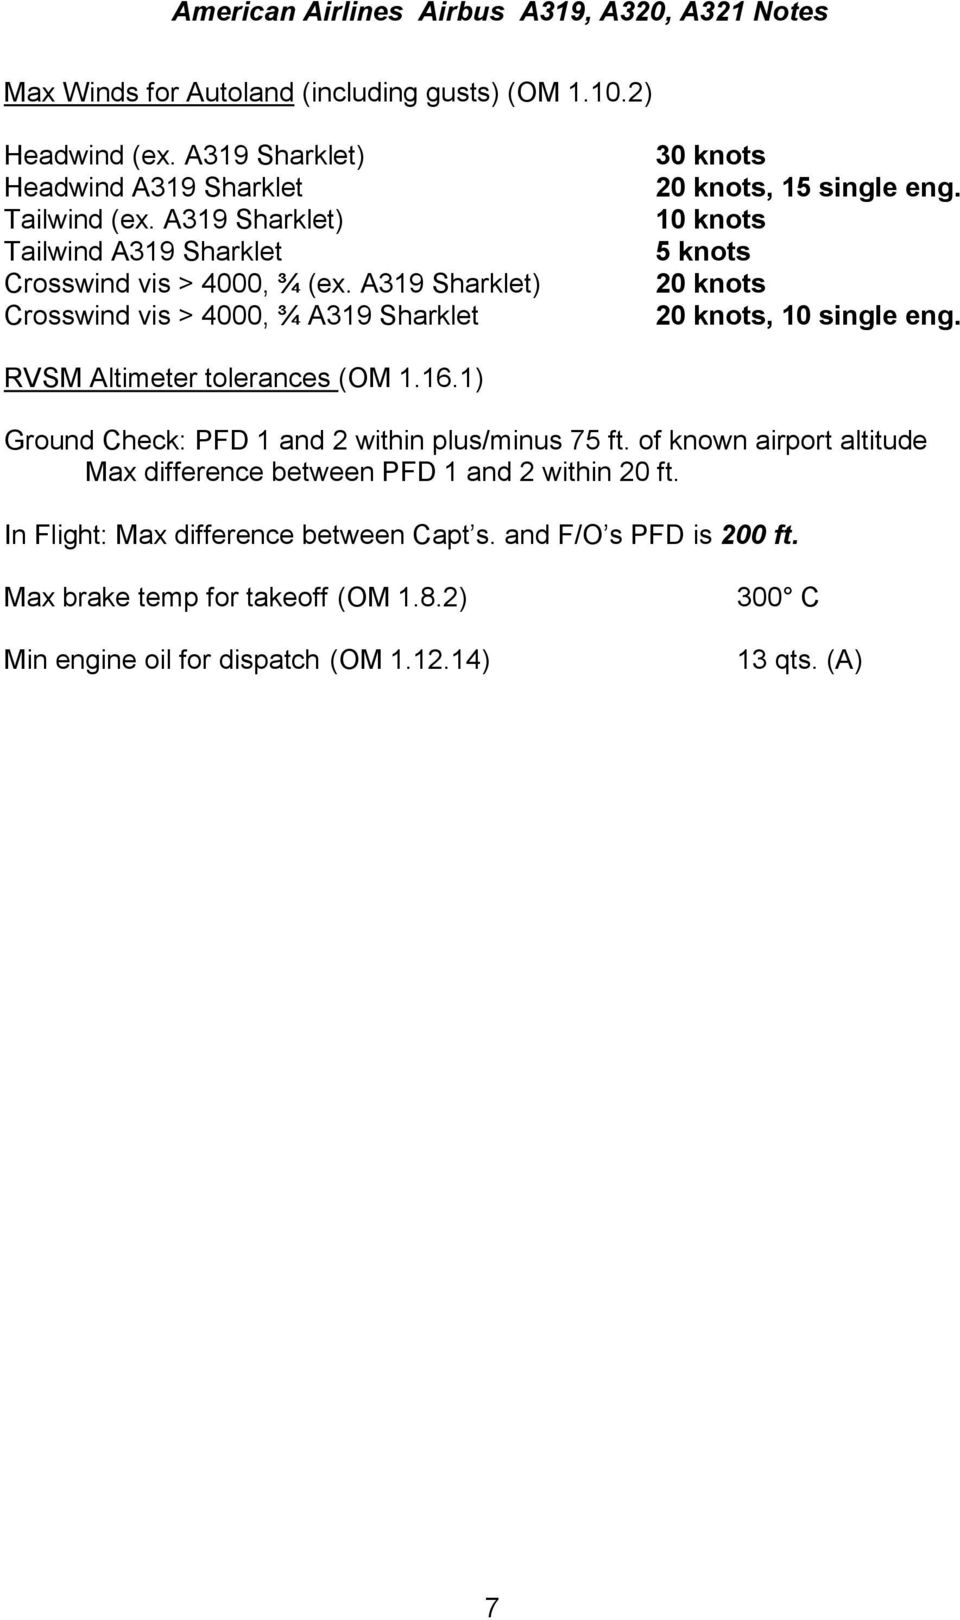 Airbus A319 320 321 Notes Pdf A320 Wiring Harness 10 Knots 5 20 Single Eng Rvsm Altimeter Tolerances